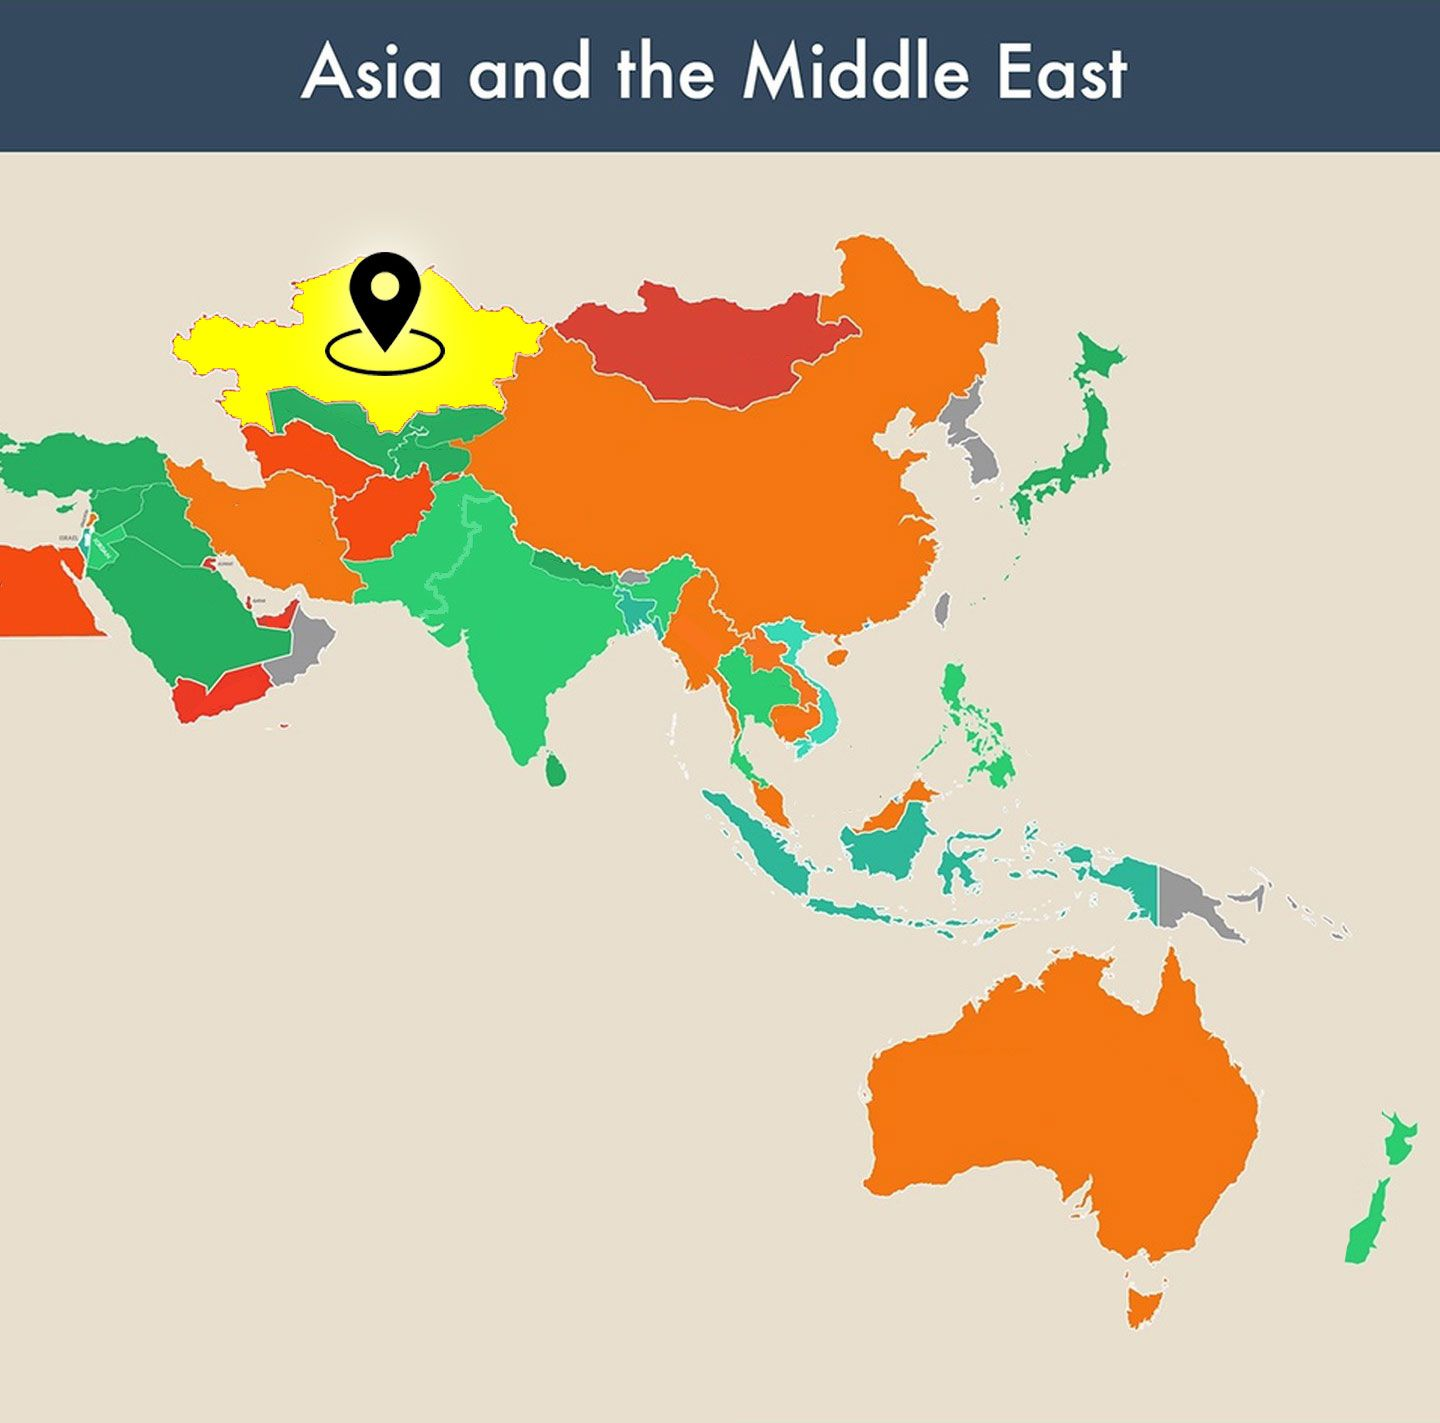 countries of the world empty map - kazakhstan image